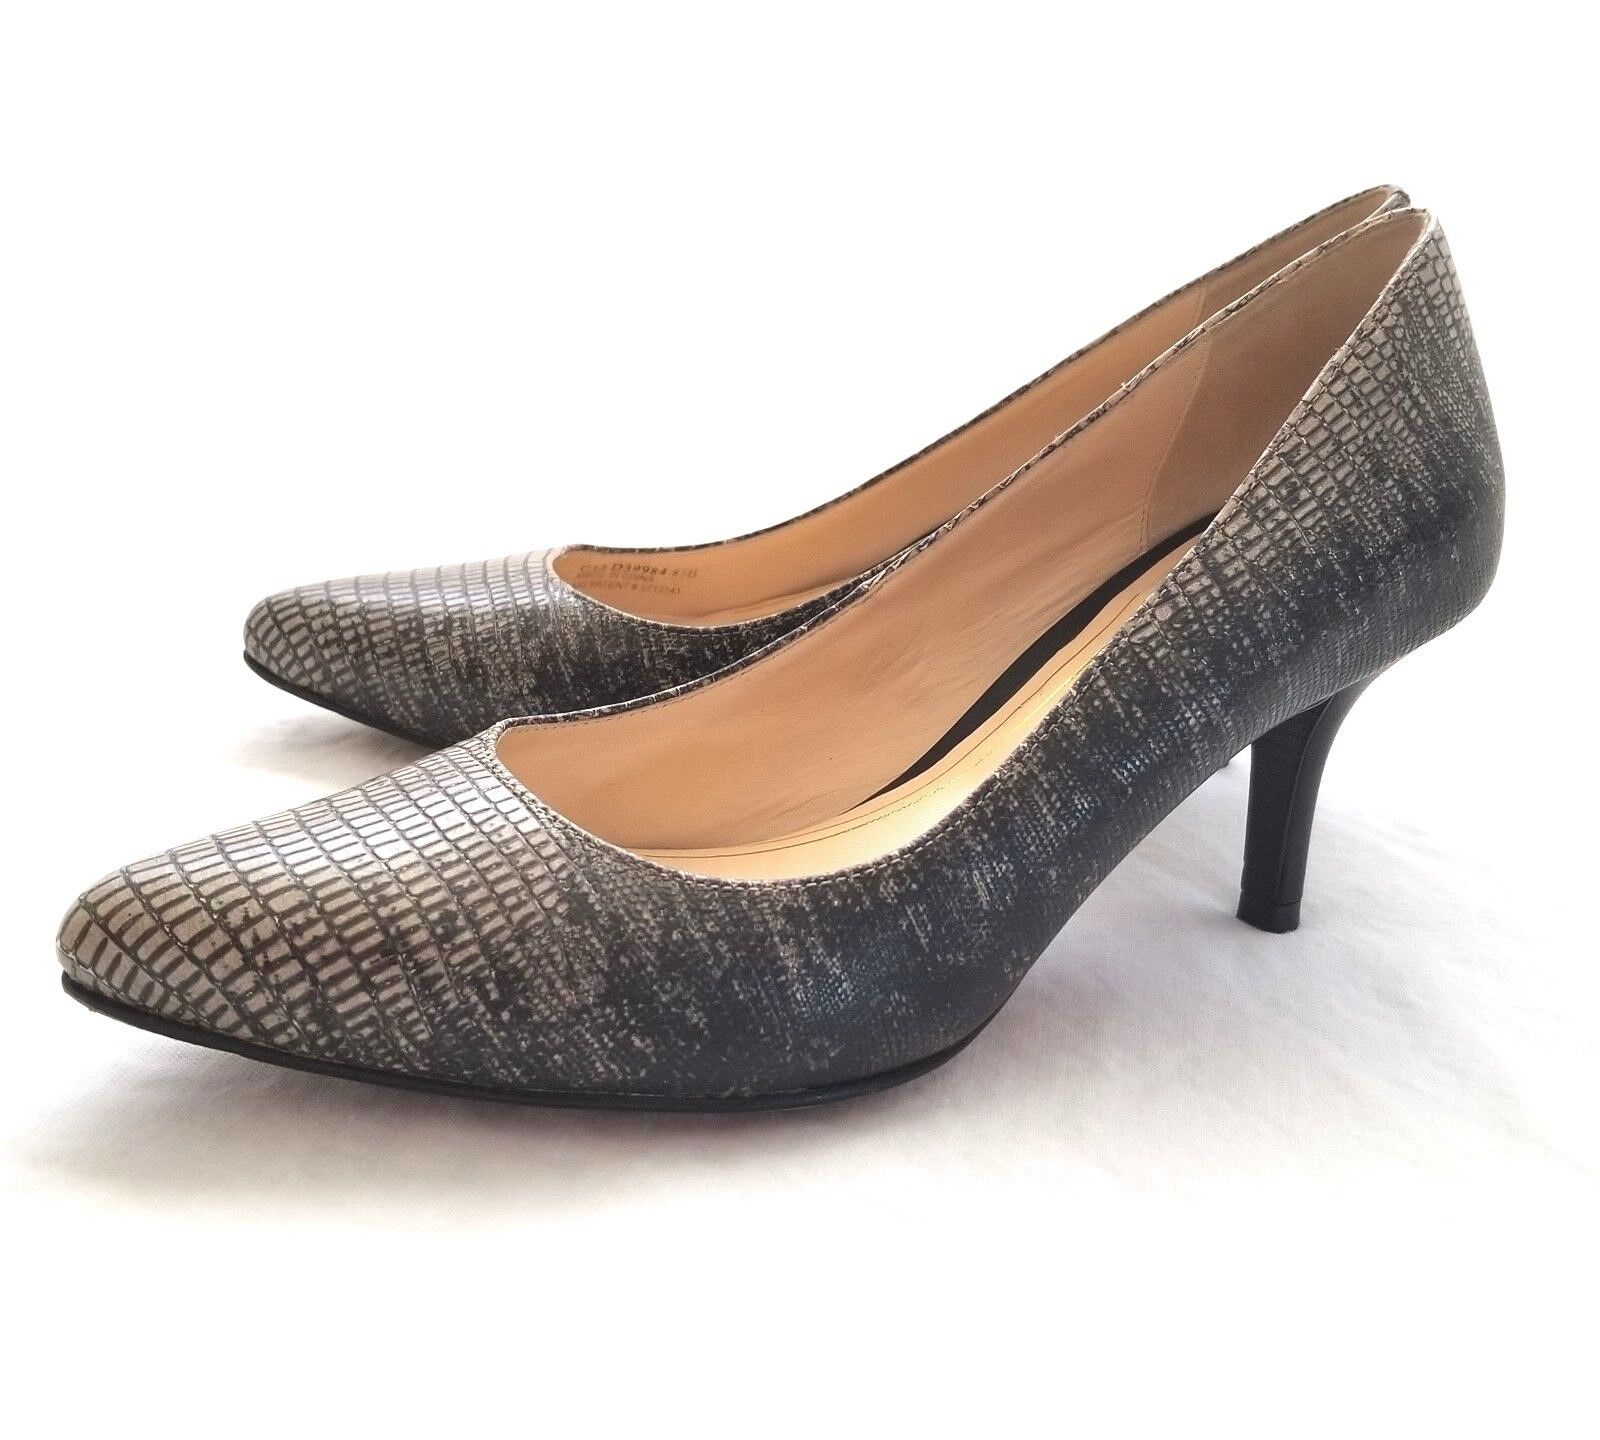 328 Cole Haan Women's Chelsea Low Pump Python Print Dress shoes 7 NEW IN BOX